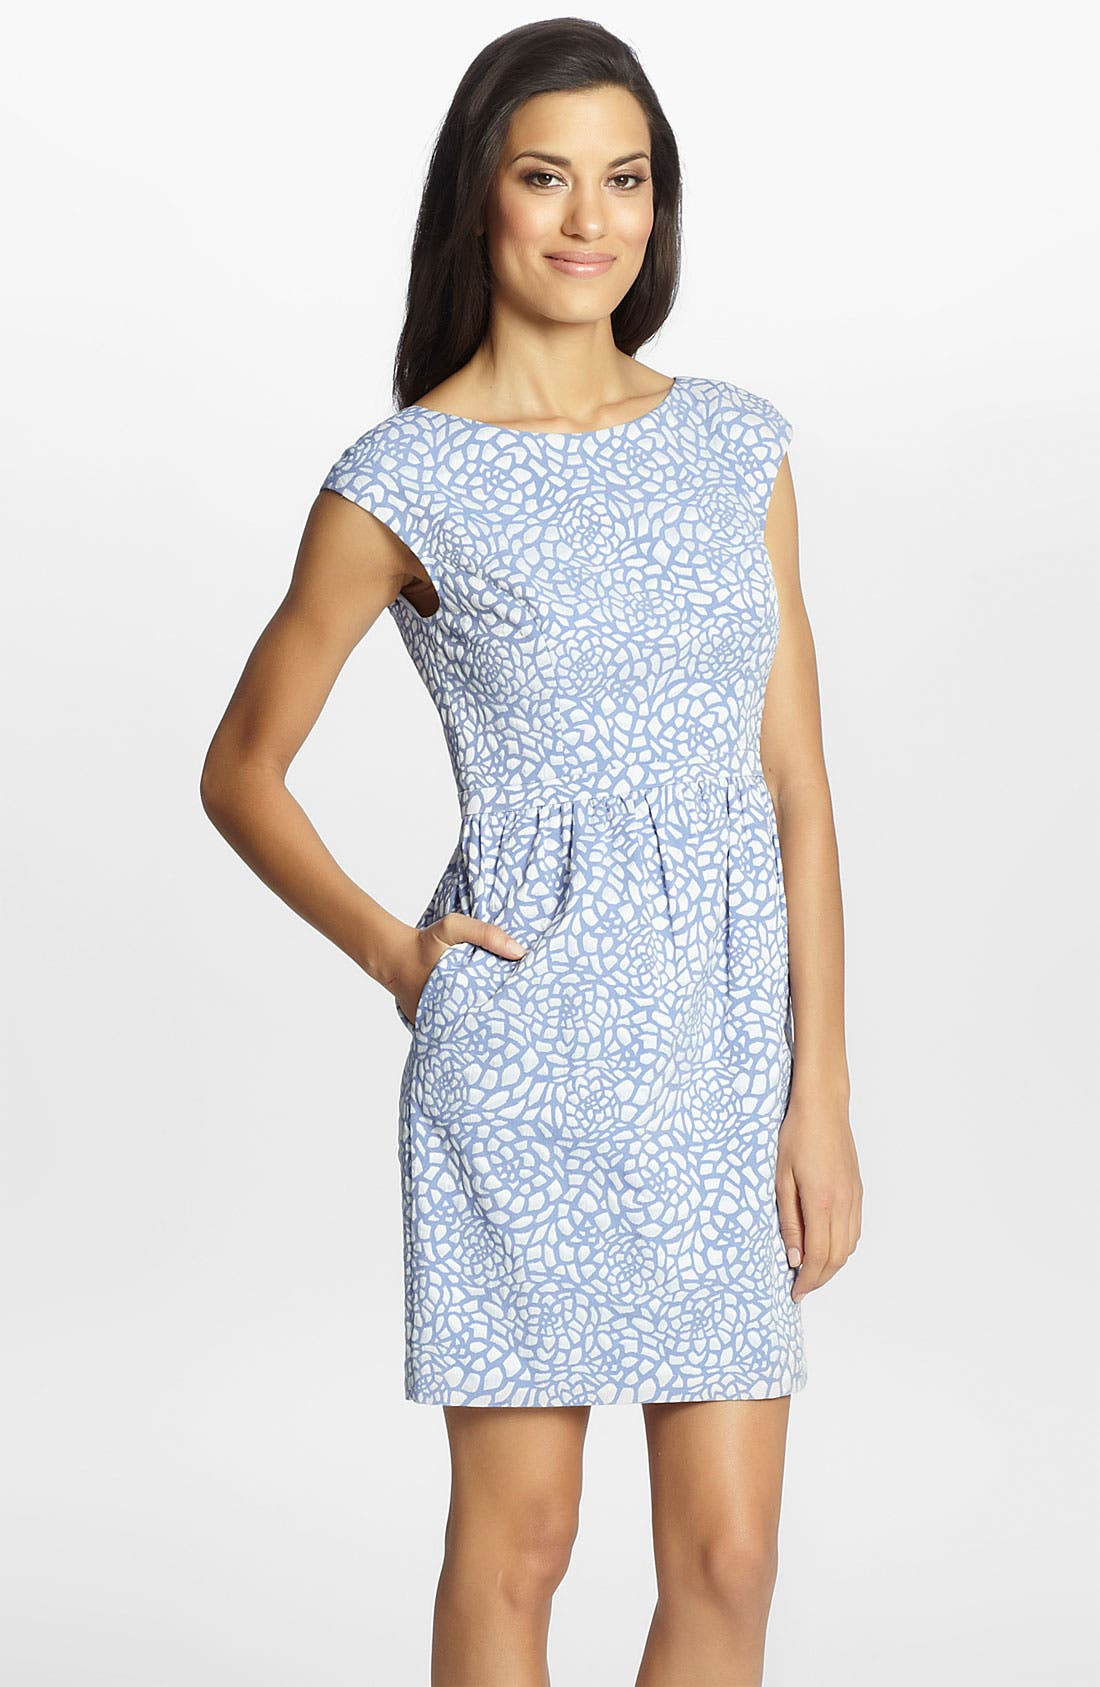 Alternate Image 1 Selected - Cynthia Steffe 'Jasmine' Print Jacquard Dress